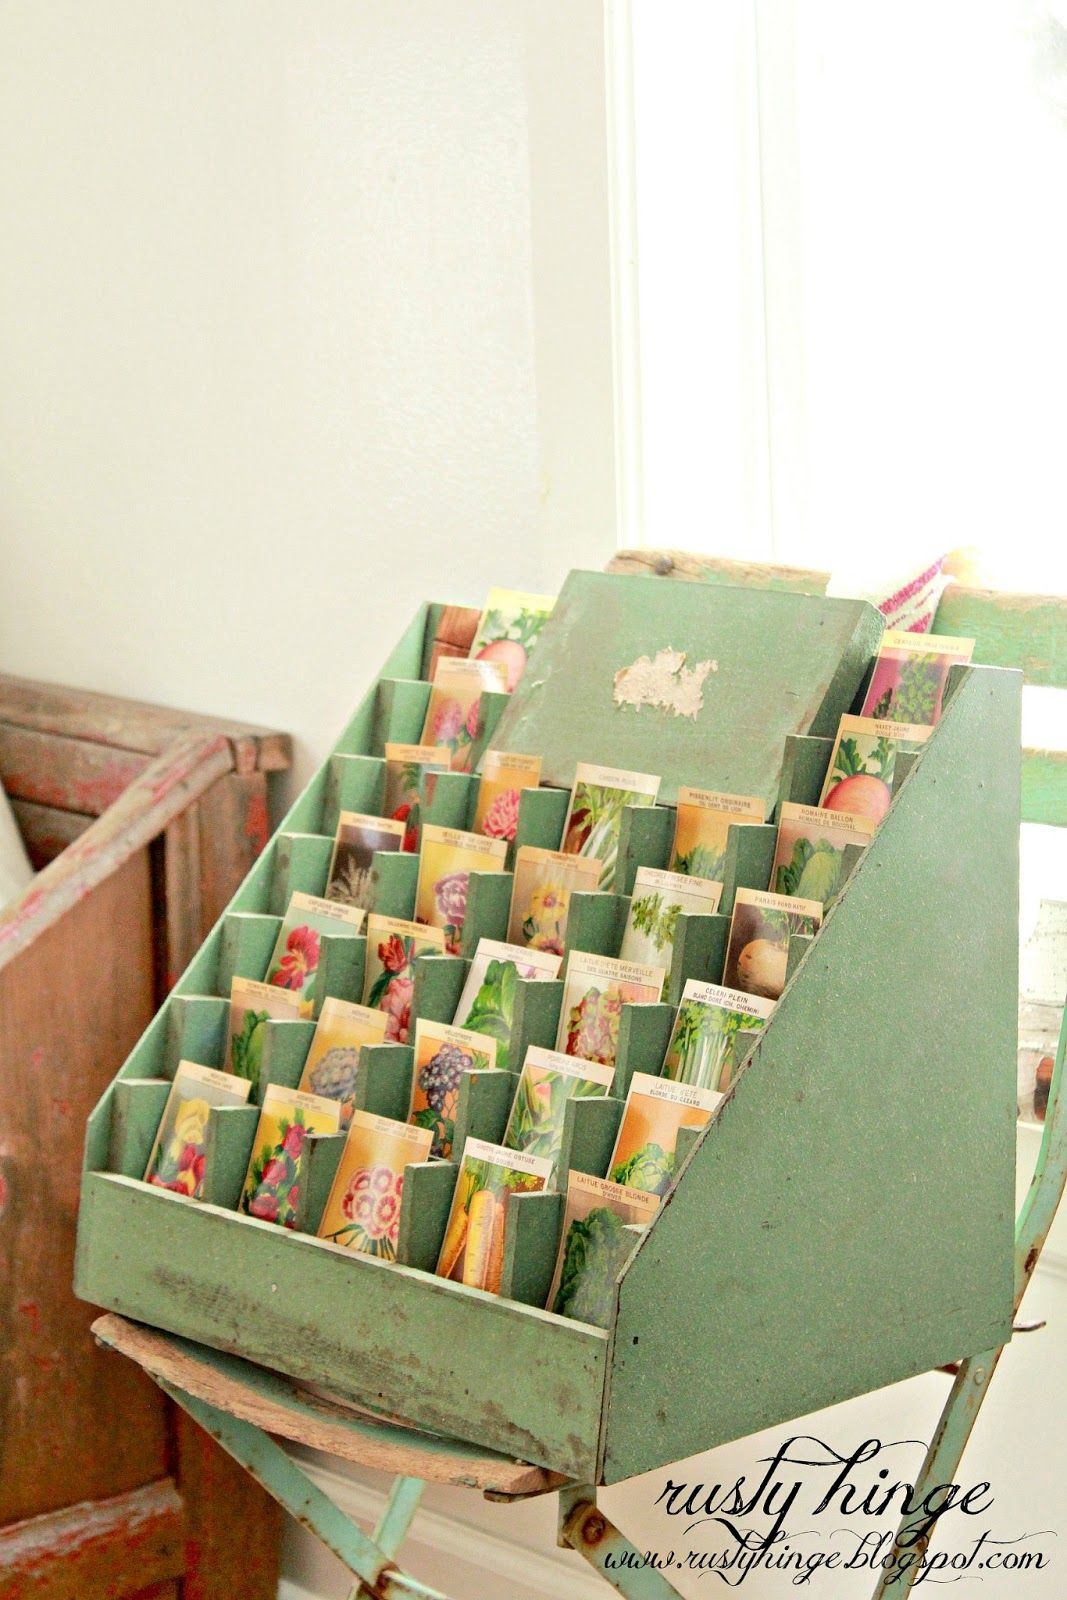 Vintage seed collection